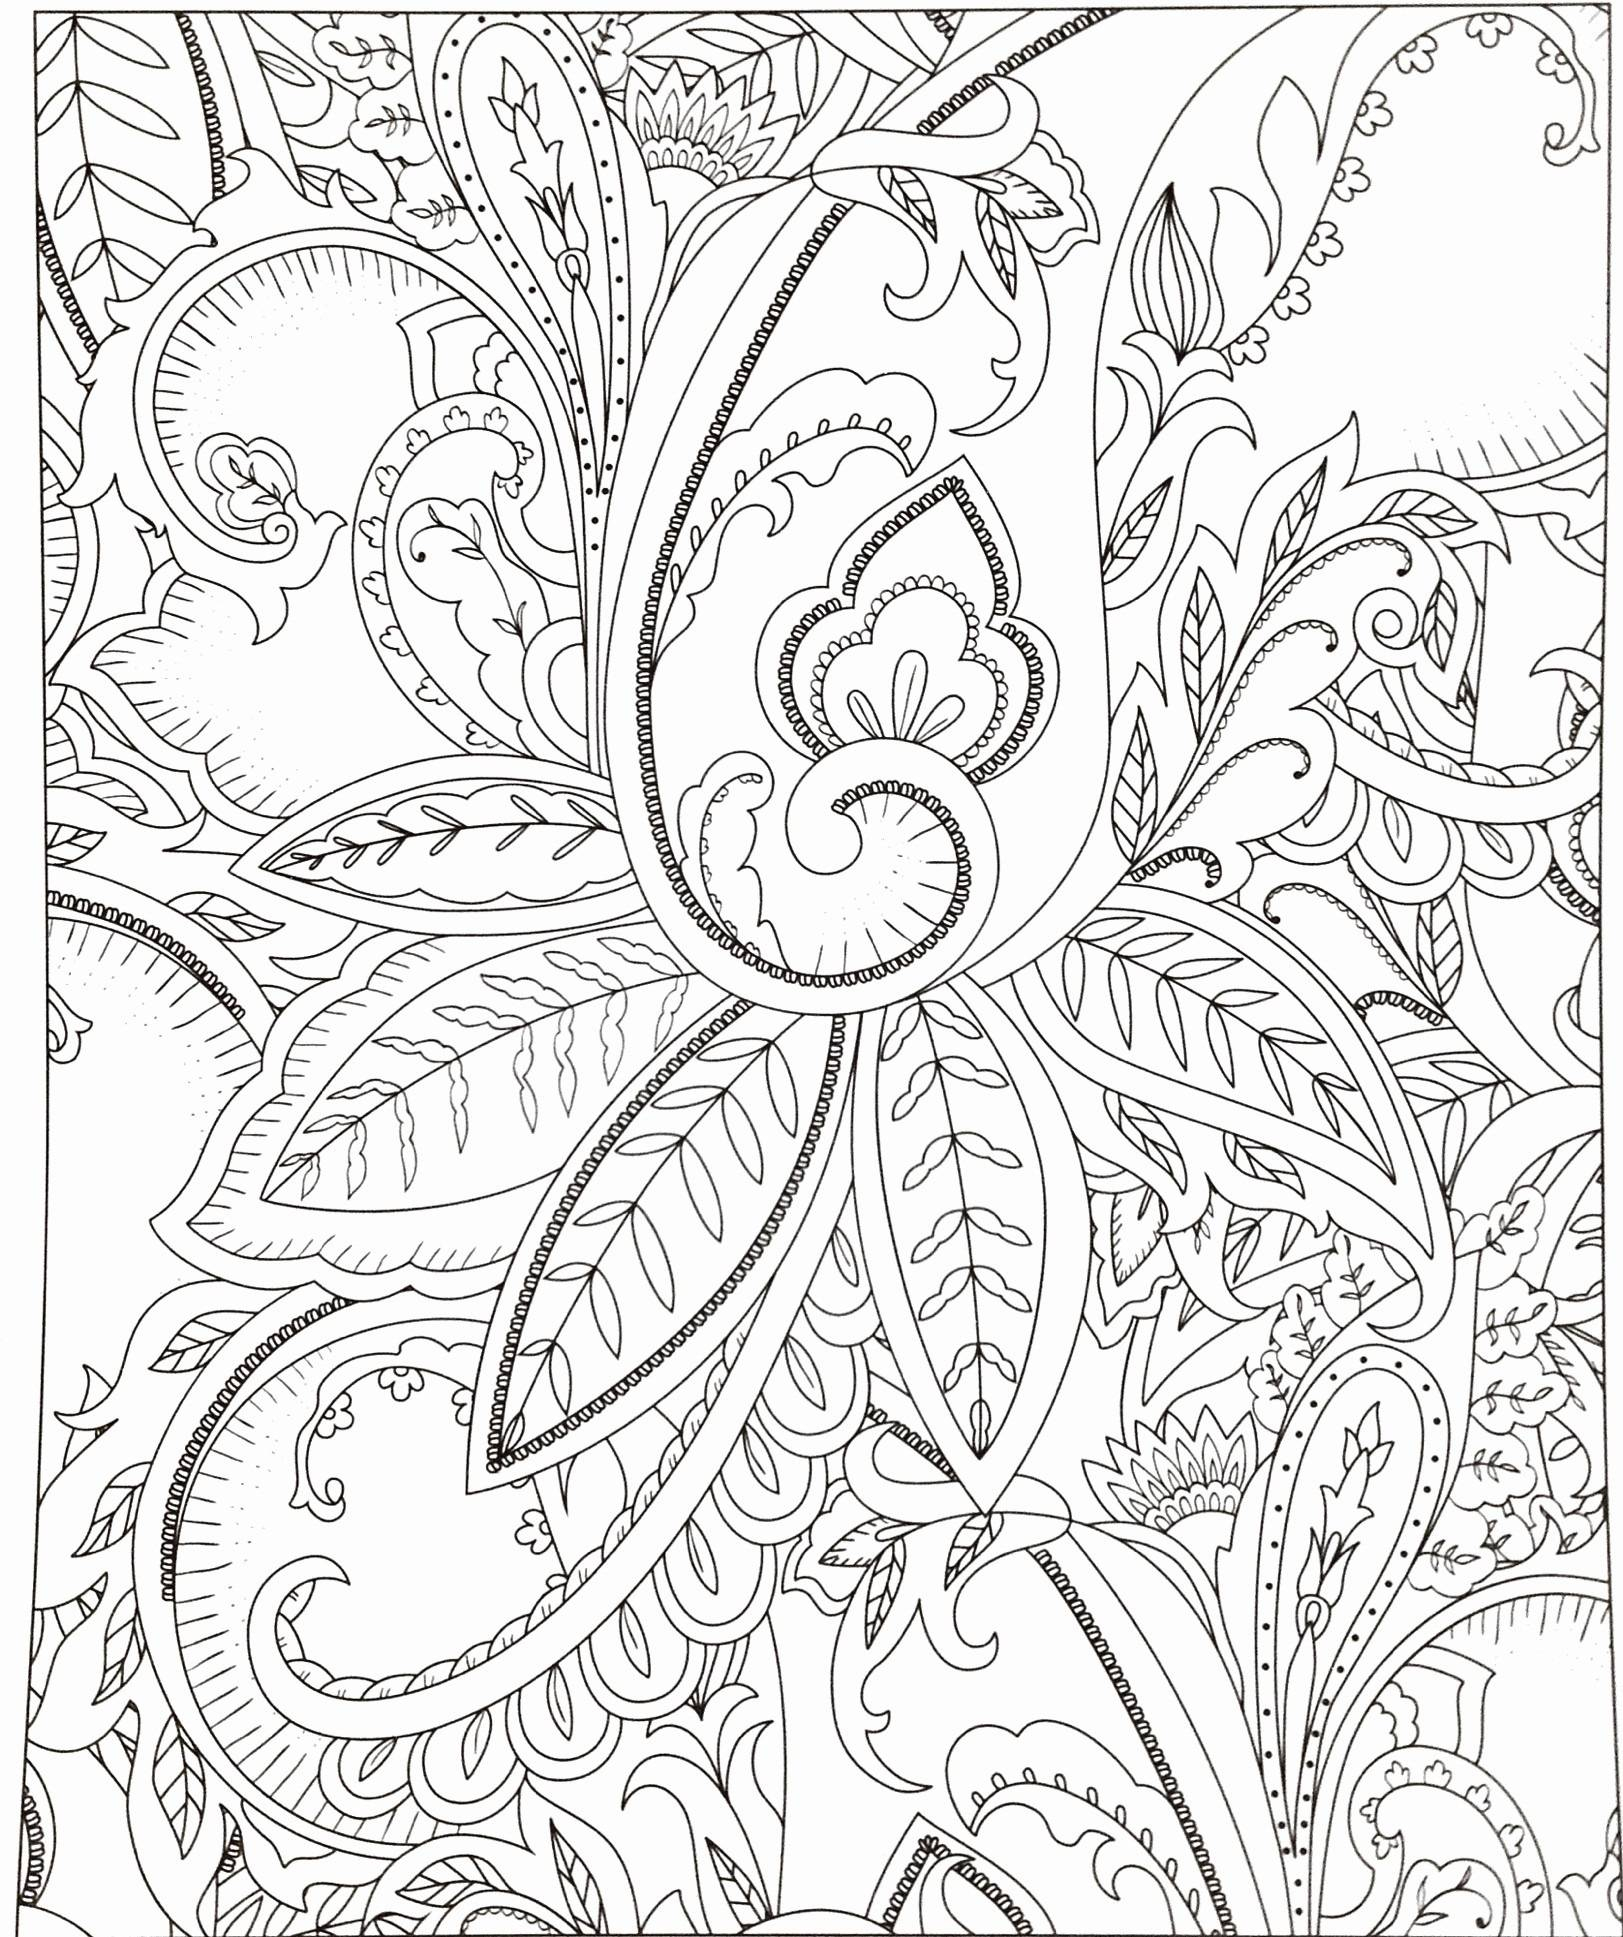 Felt Coloring Pages  Collection 20b - To print for your project